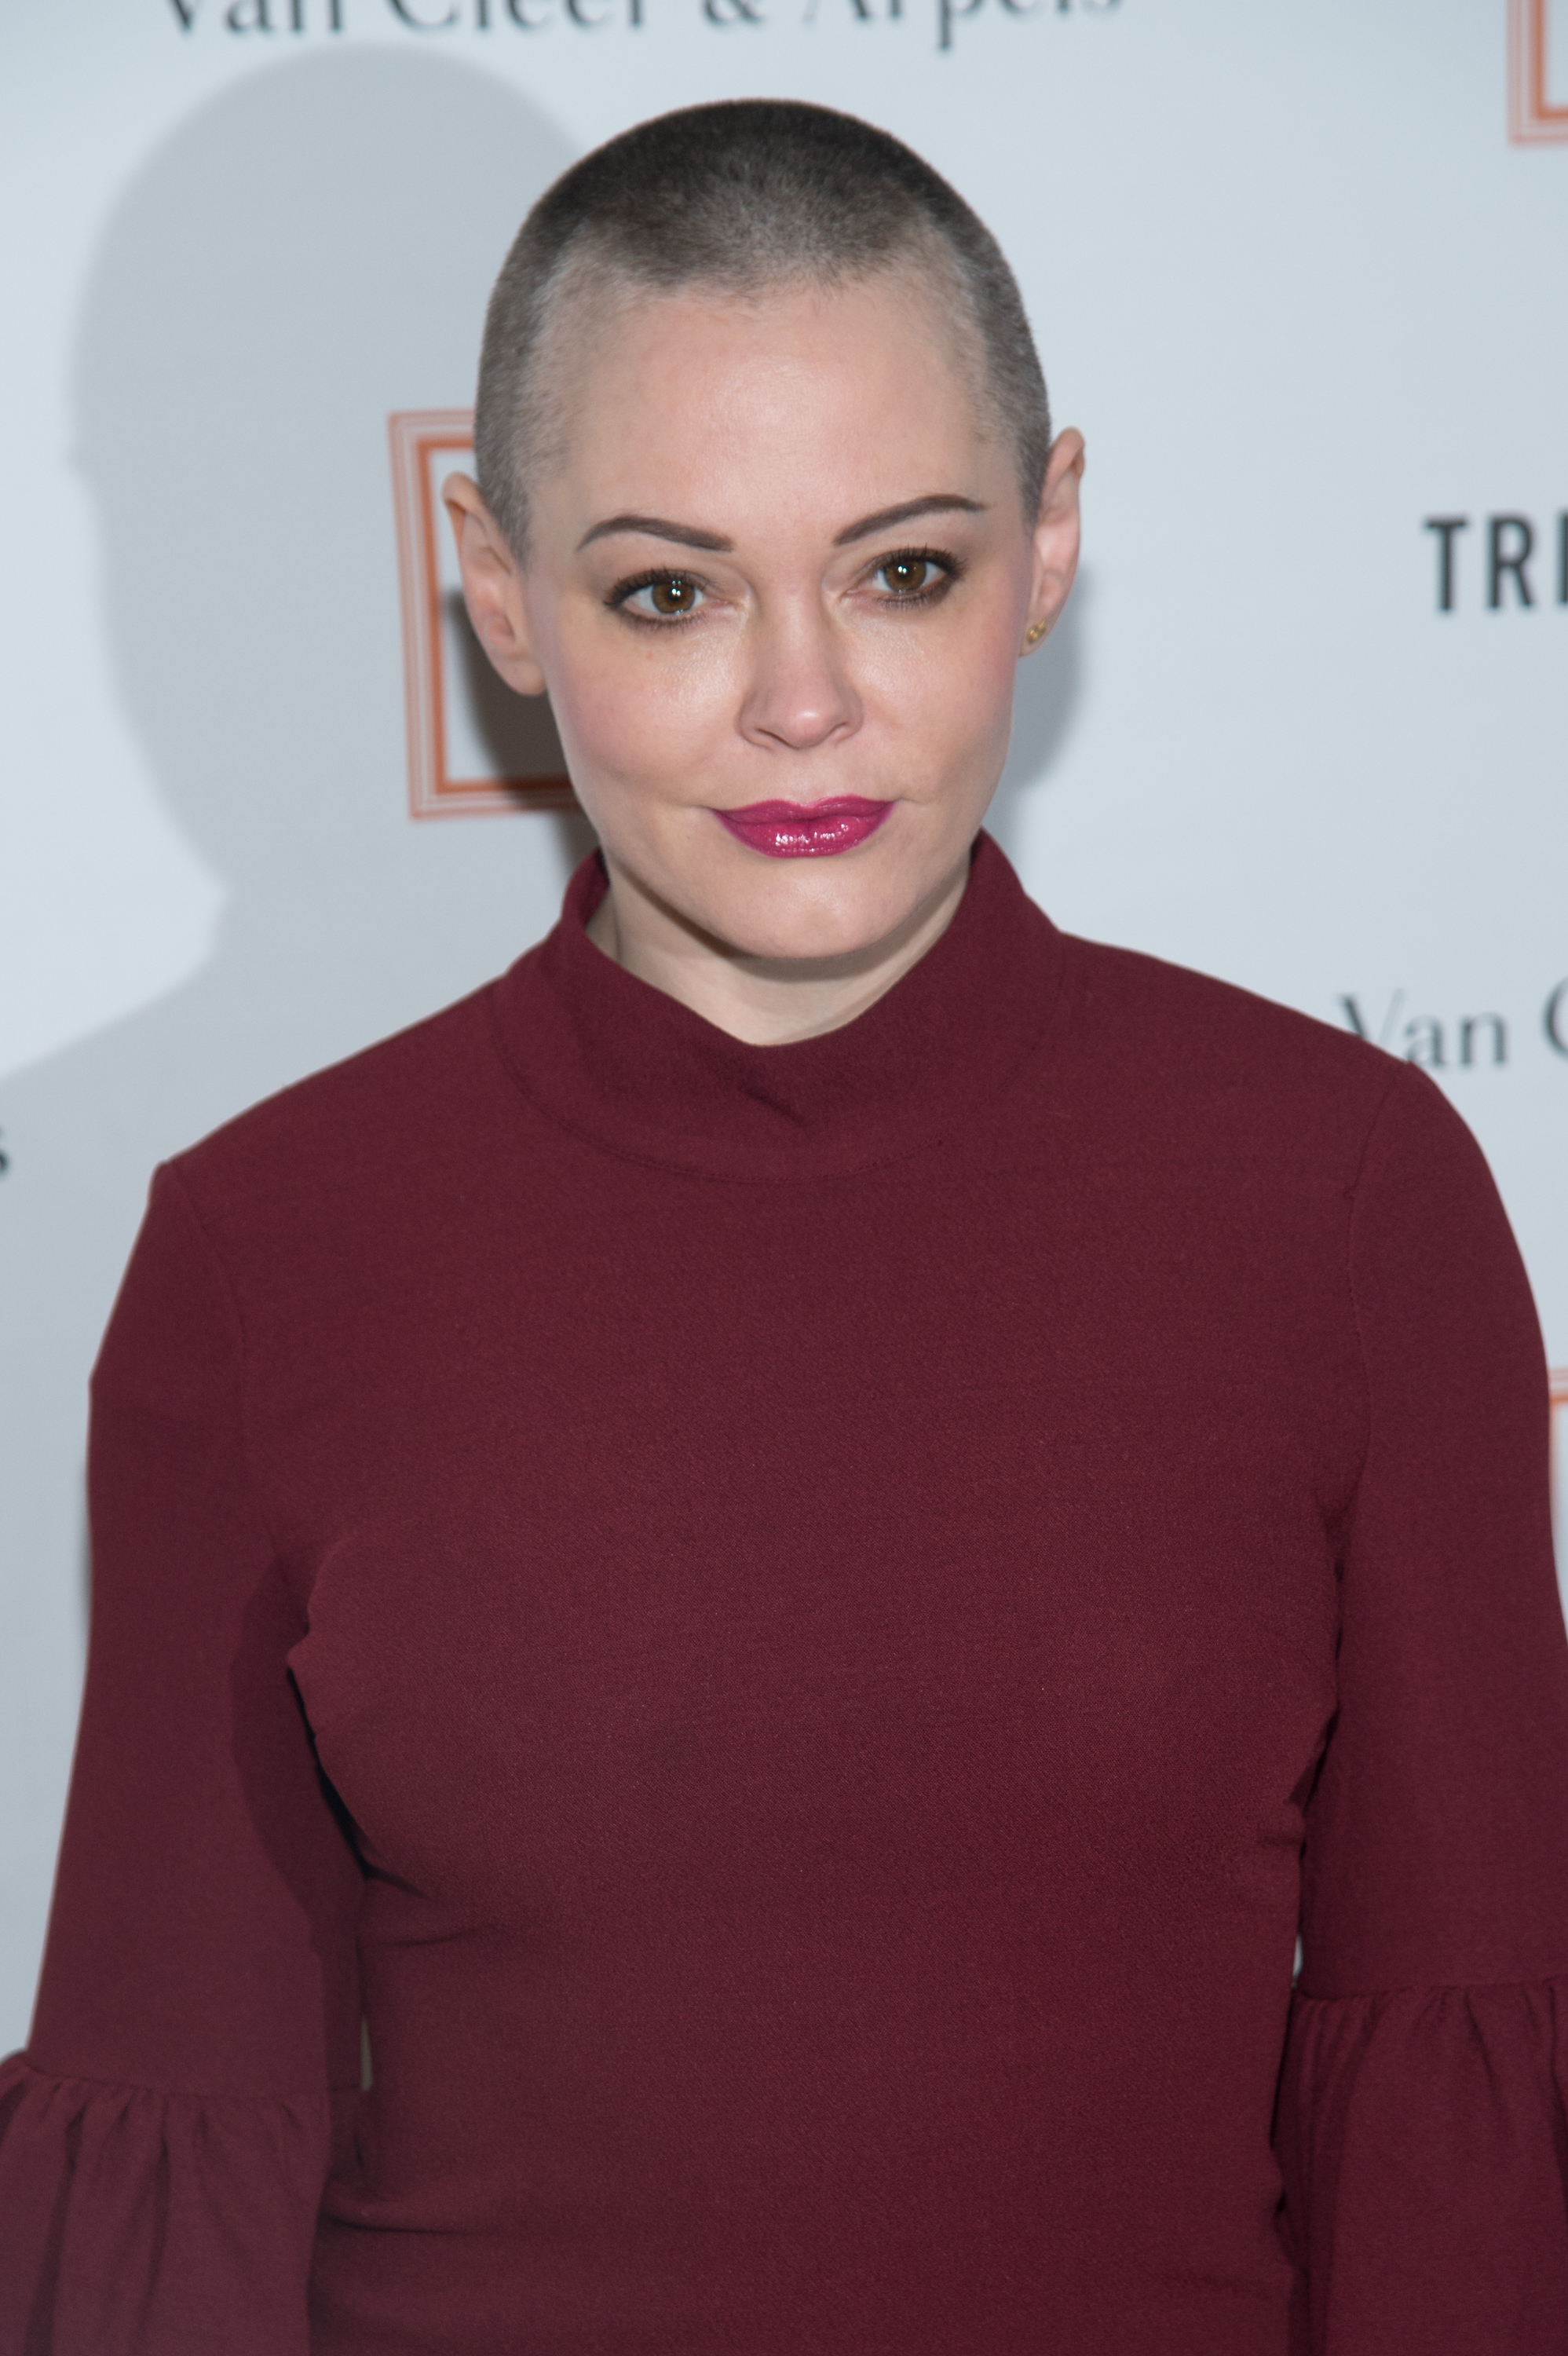 Actress Rose McGowan attends the New York Academy of Art's Tribeca Ball 2016 at the NY Academy of Art in New York City on April 4, 2016.